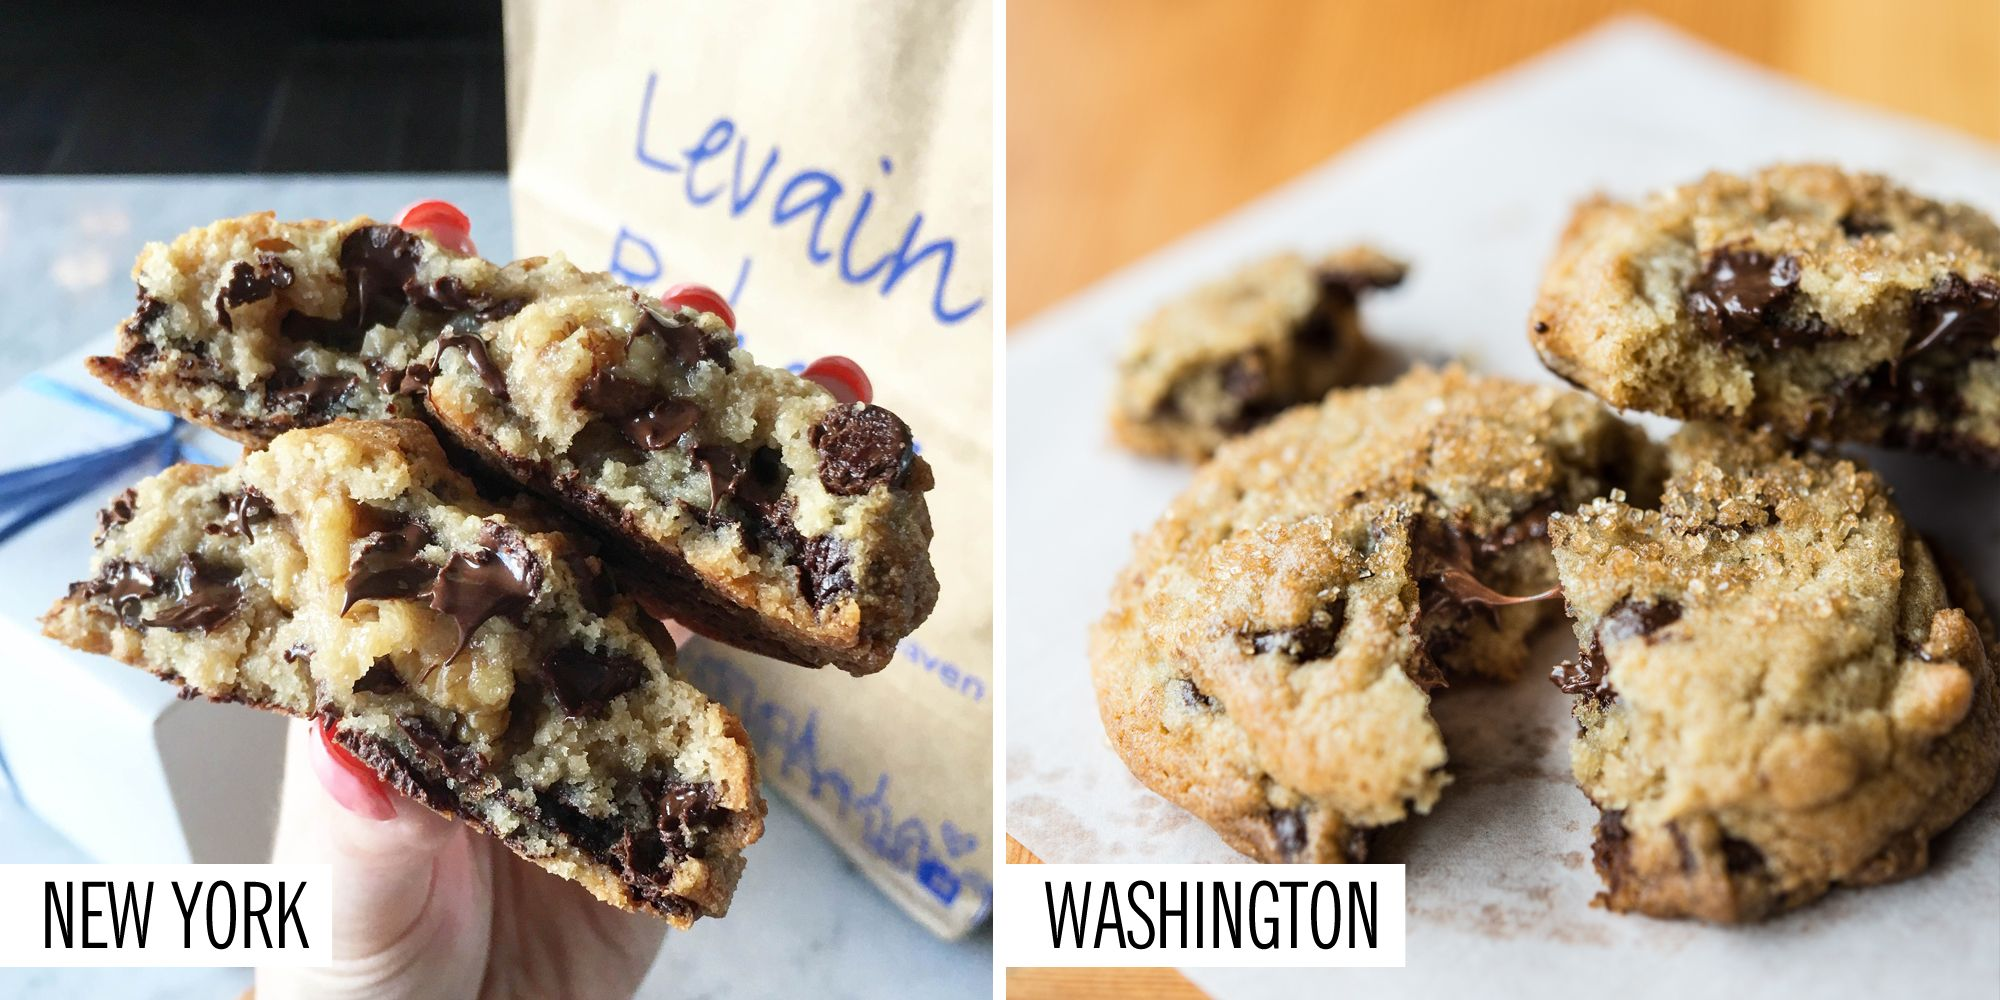 Best Chocolate Chip Cookies In The Usa Where To Find Americas